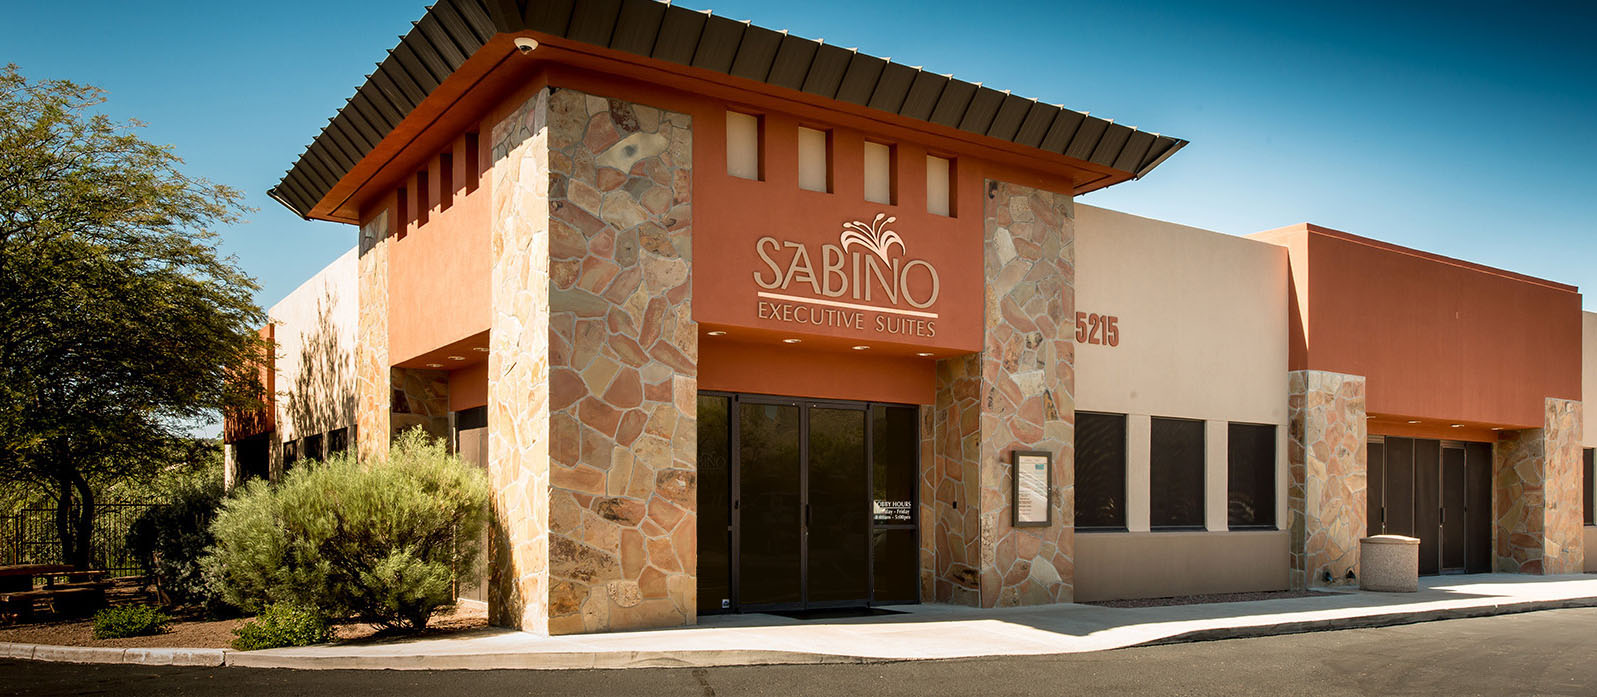 Sabino Executive Suites Photo